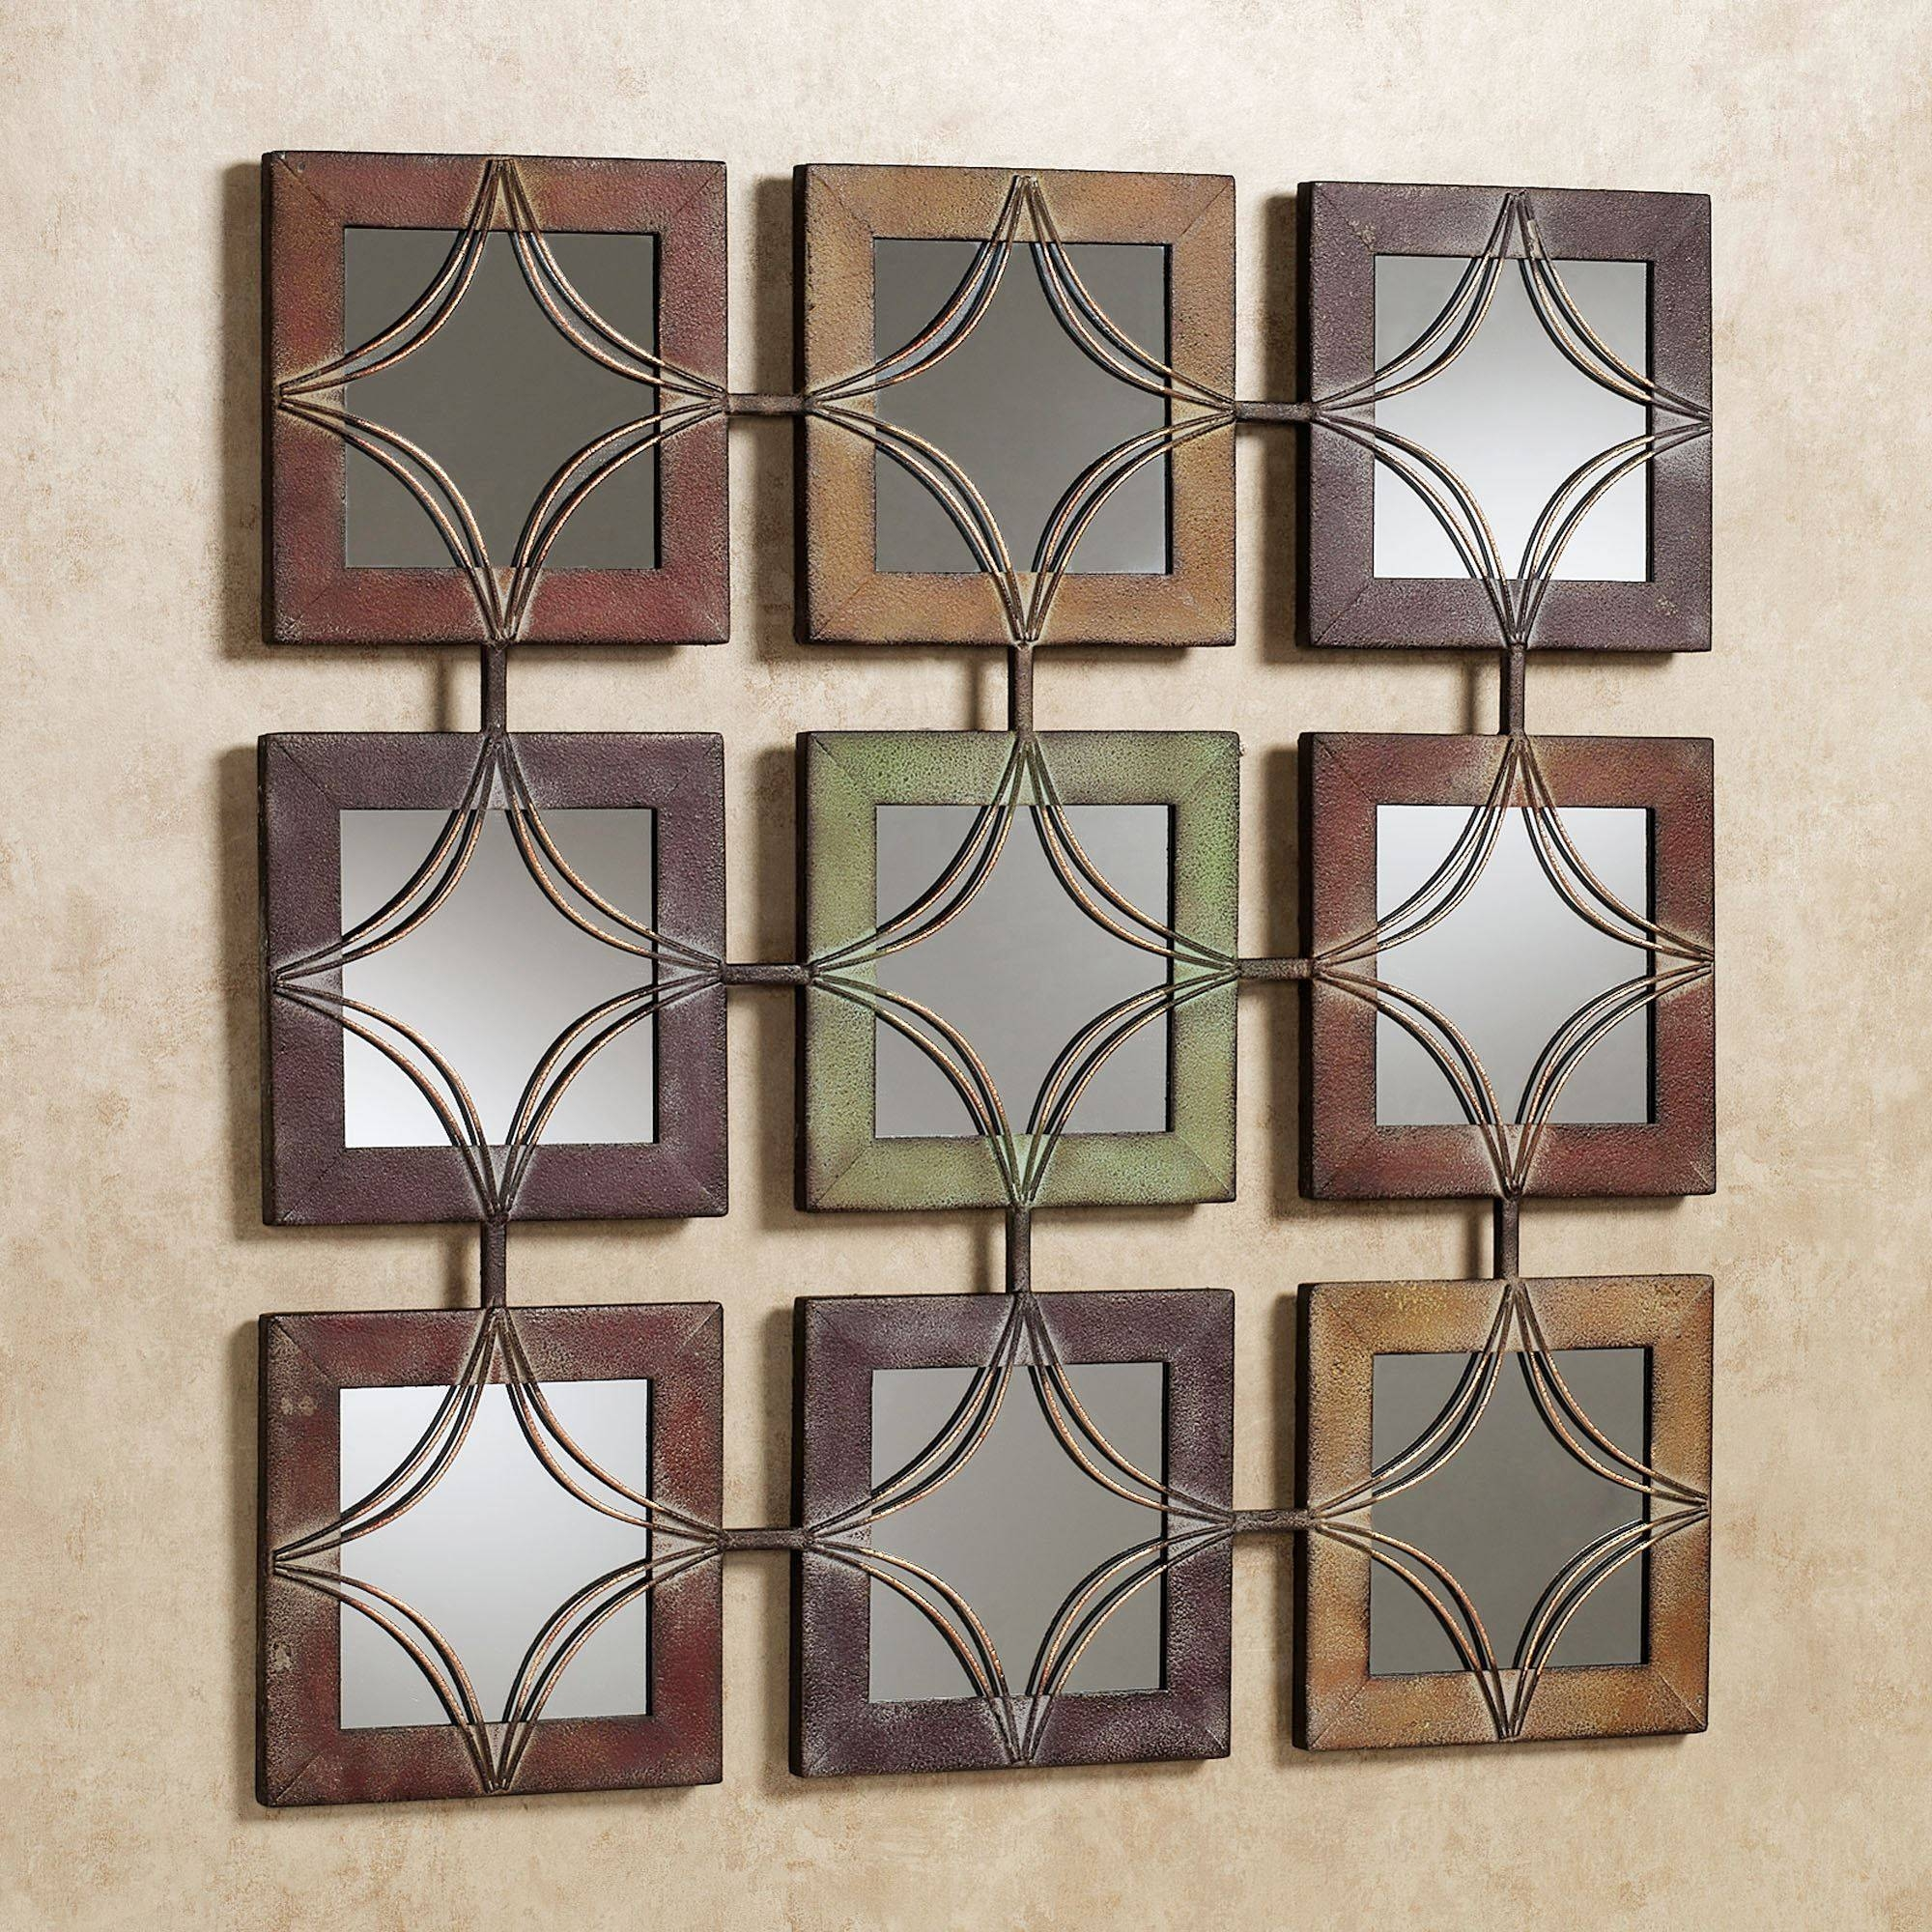 Domini Mirrored Metal Wall Art Intended For Most Recent Metallic Wall Art (View 16 of 25)